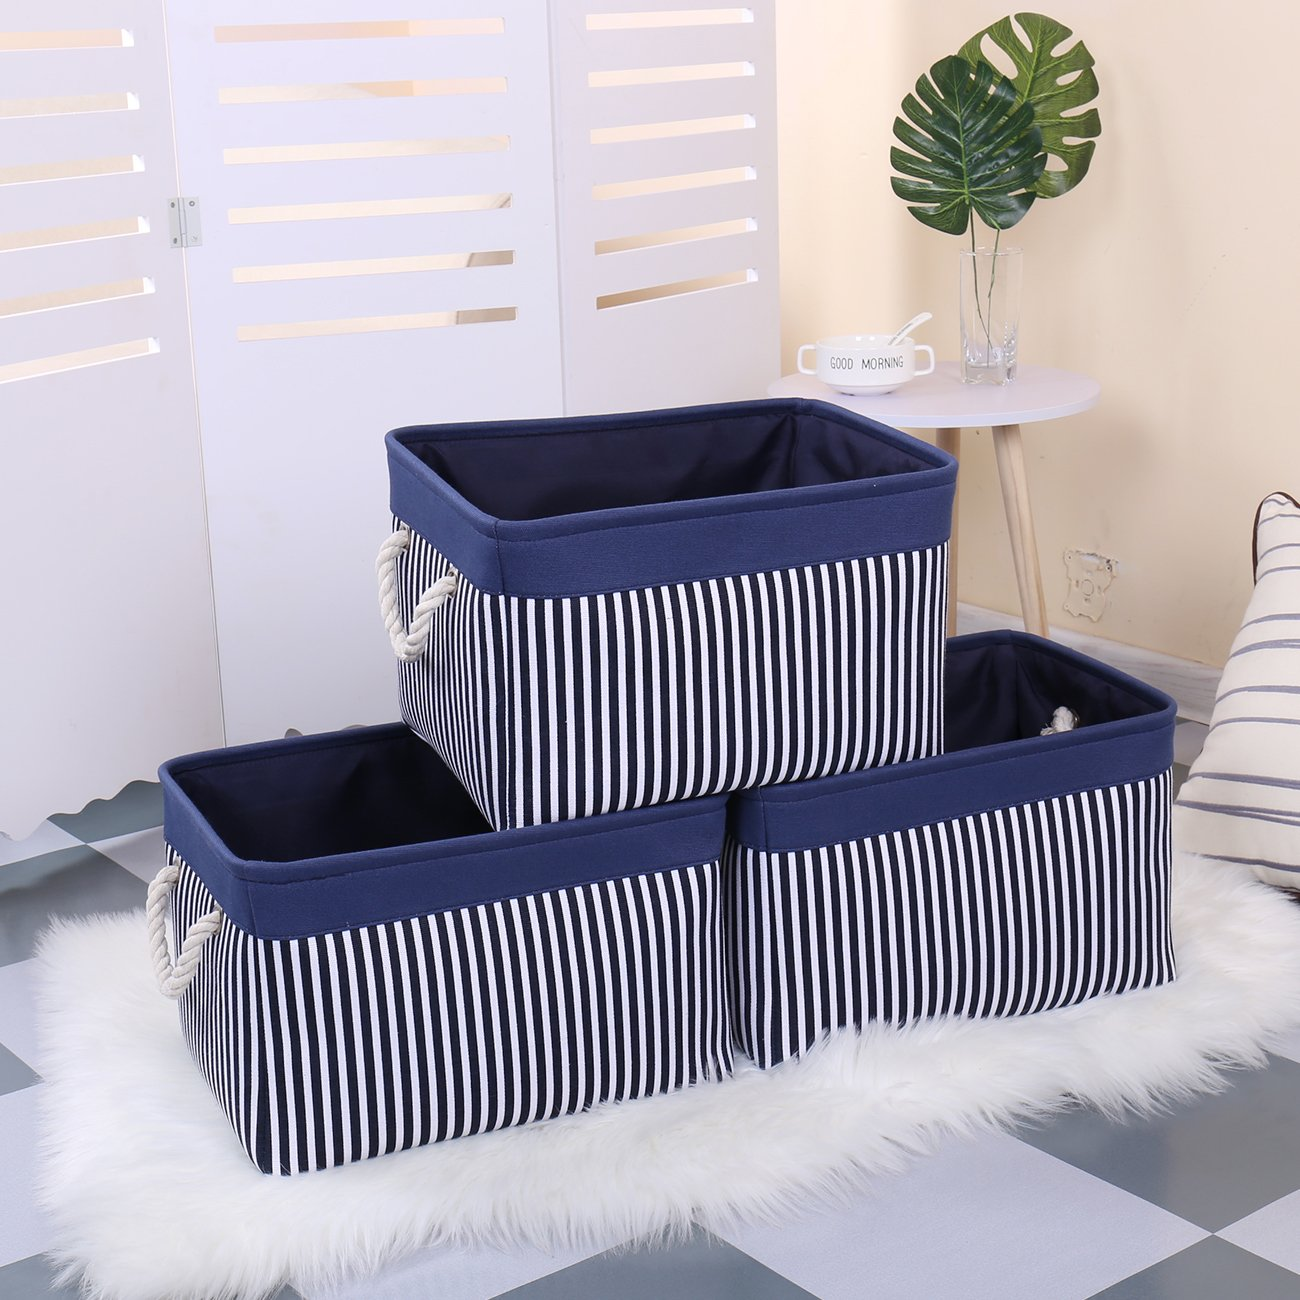 TcaFmac Large Rectangular Nautical Baskets for Storage Decorative Canvas Closet Storage Bins Organizing Baskets for Shelves W x 12 Nursery Toys,Empty 16 H L x 12 inch